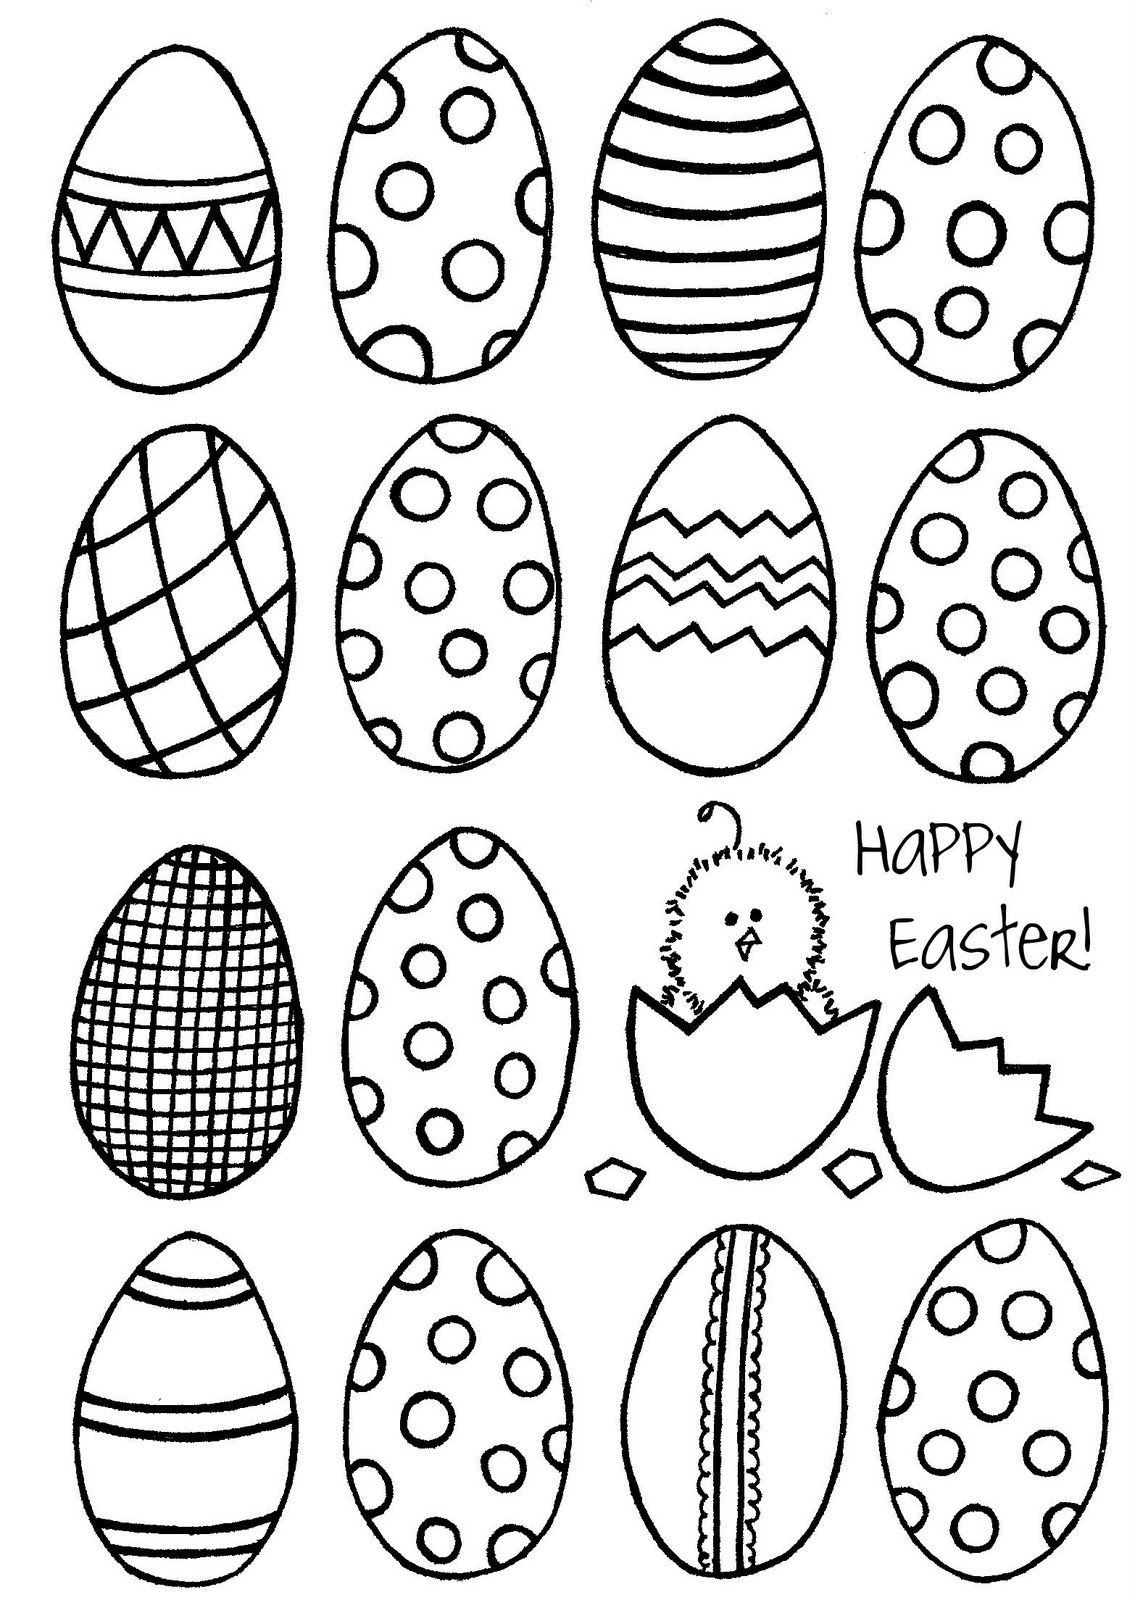 Easter Recipes Easter Egg Template Easter Drawings Easter Egg Coloring Pages